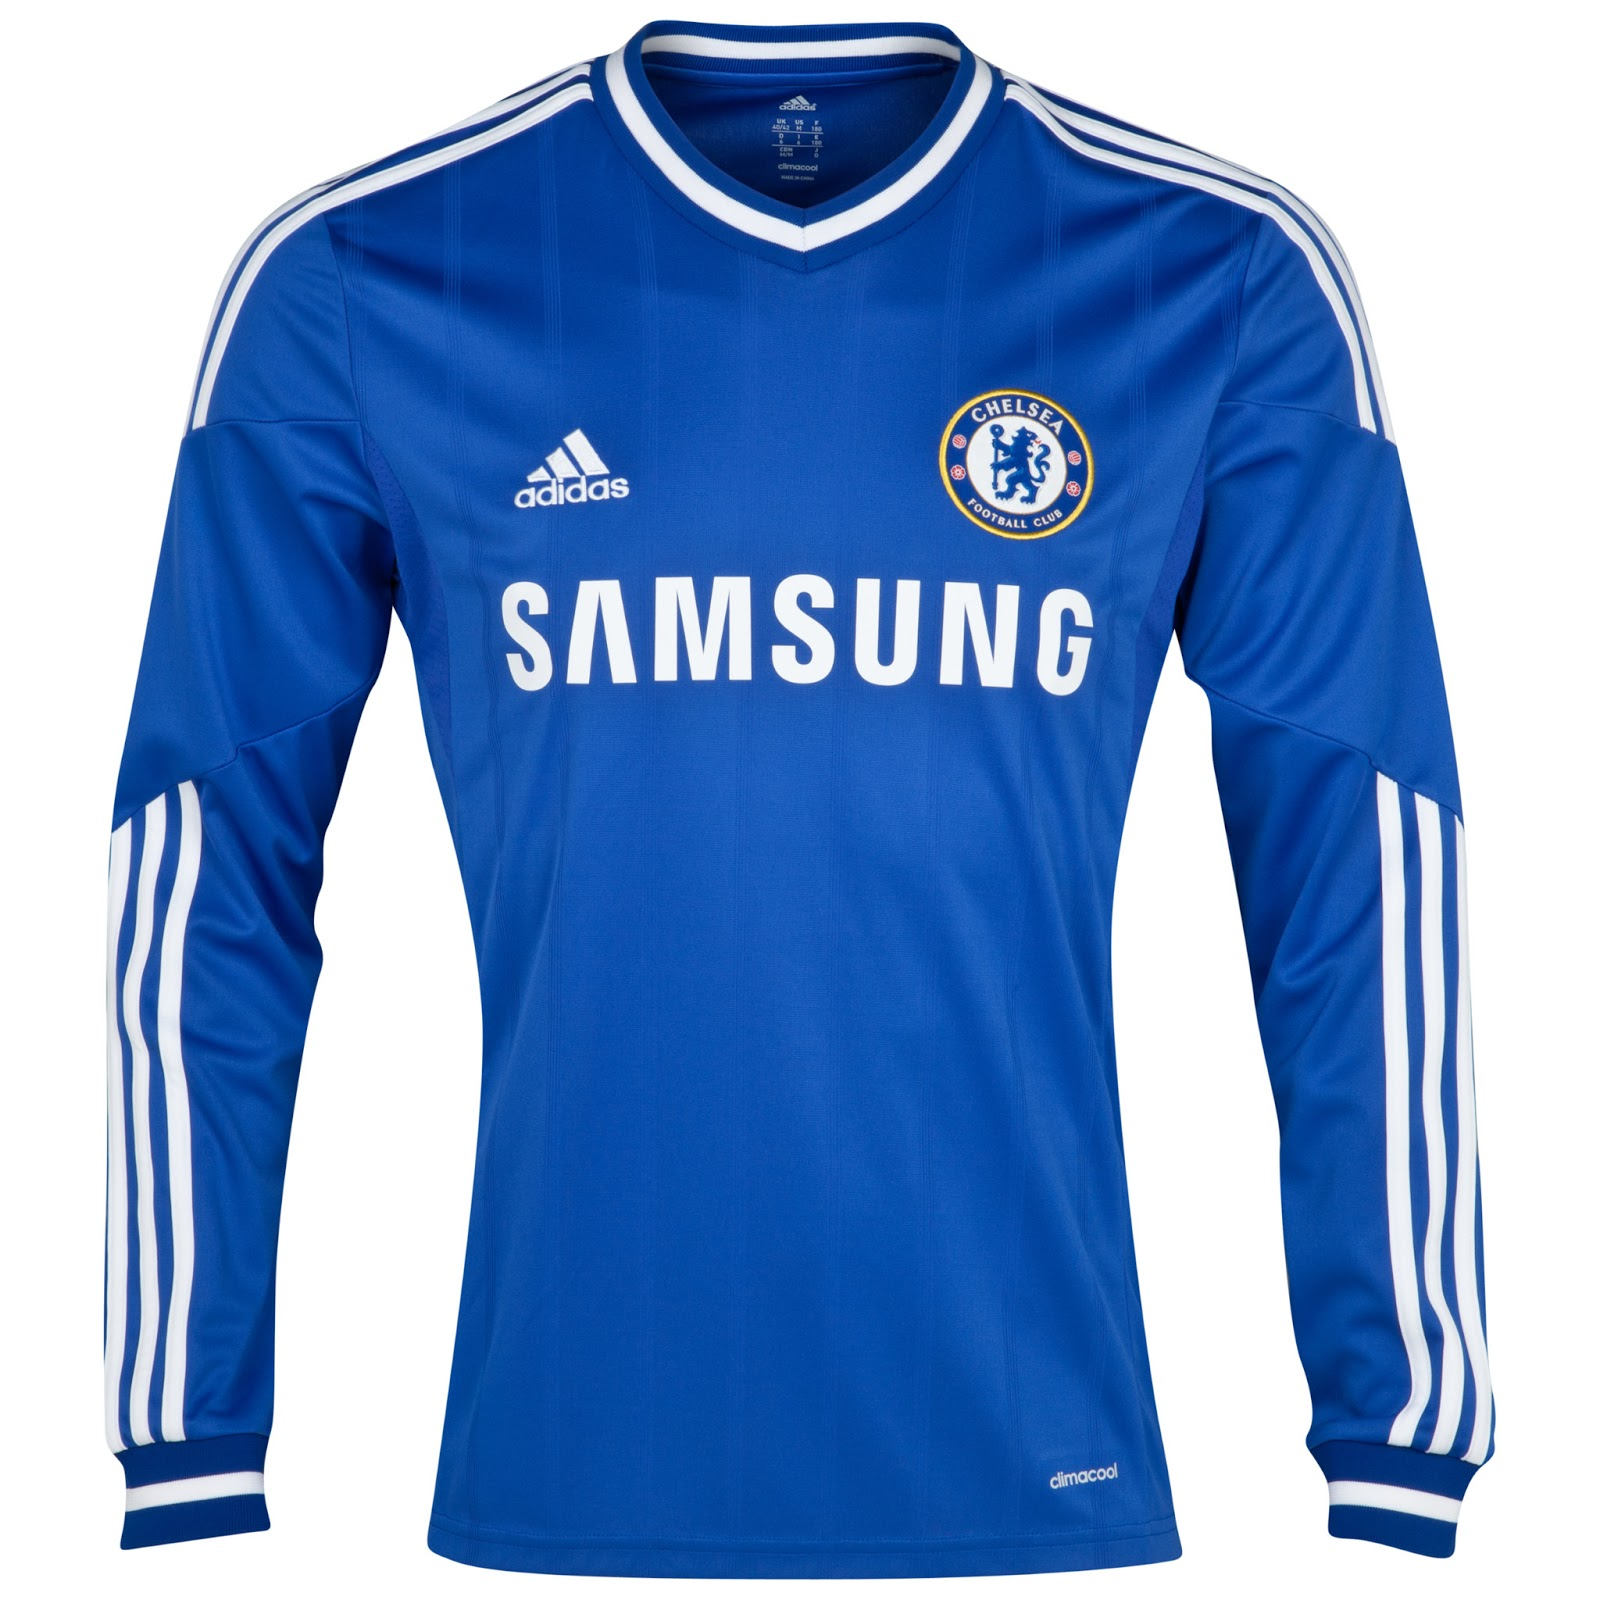 Chelsea 2019/20 home kit: Leaked images of Blues new Nike